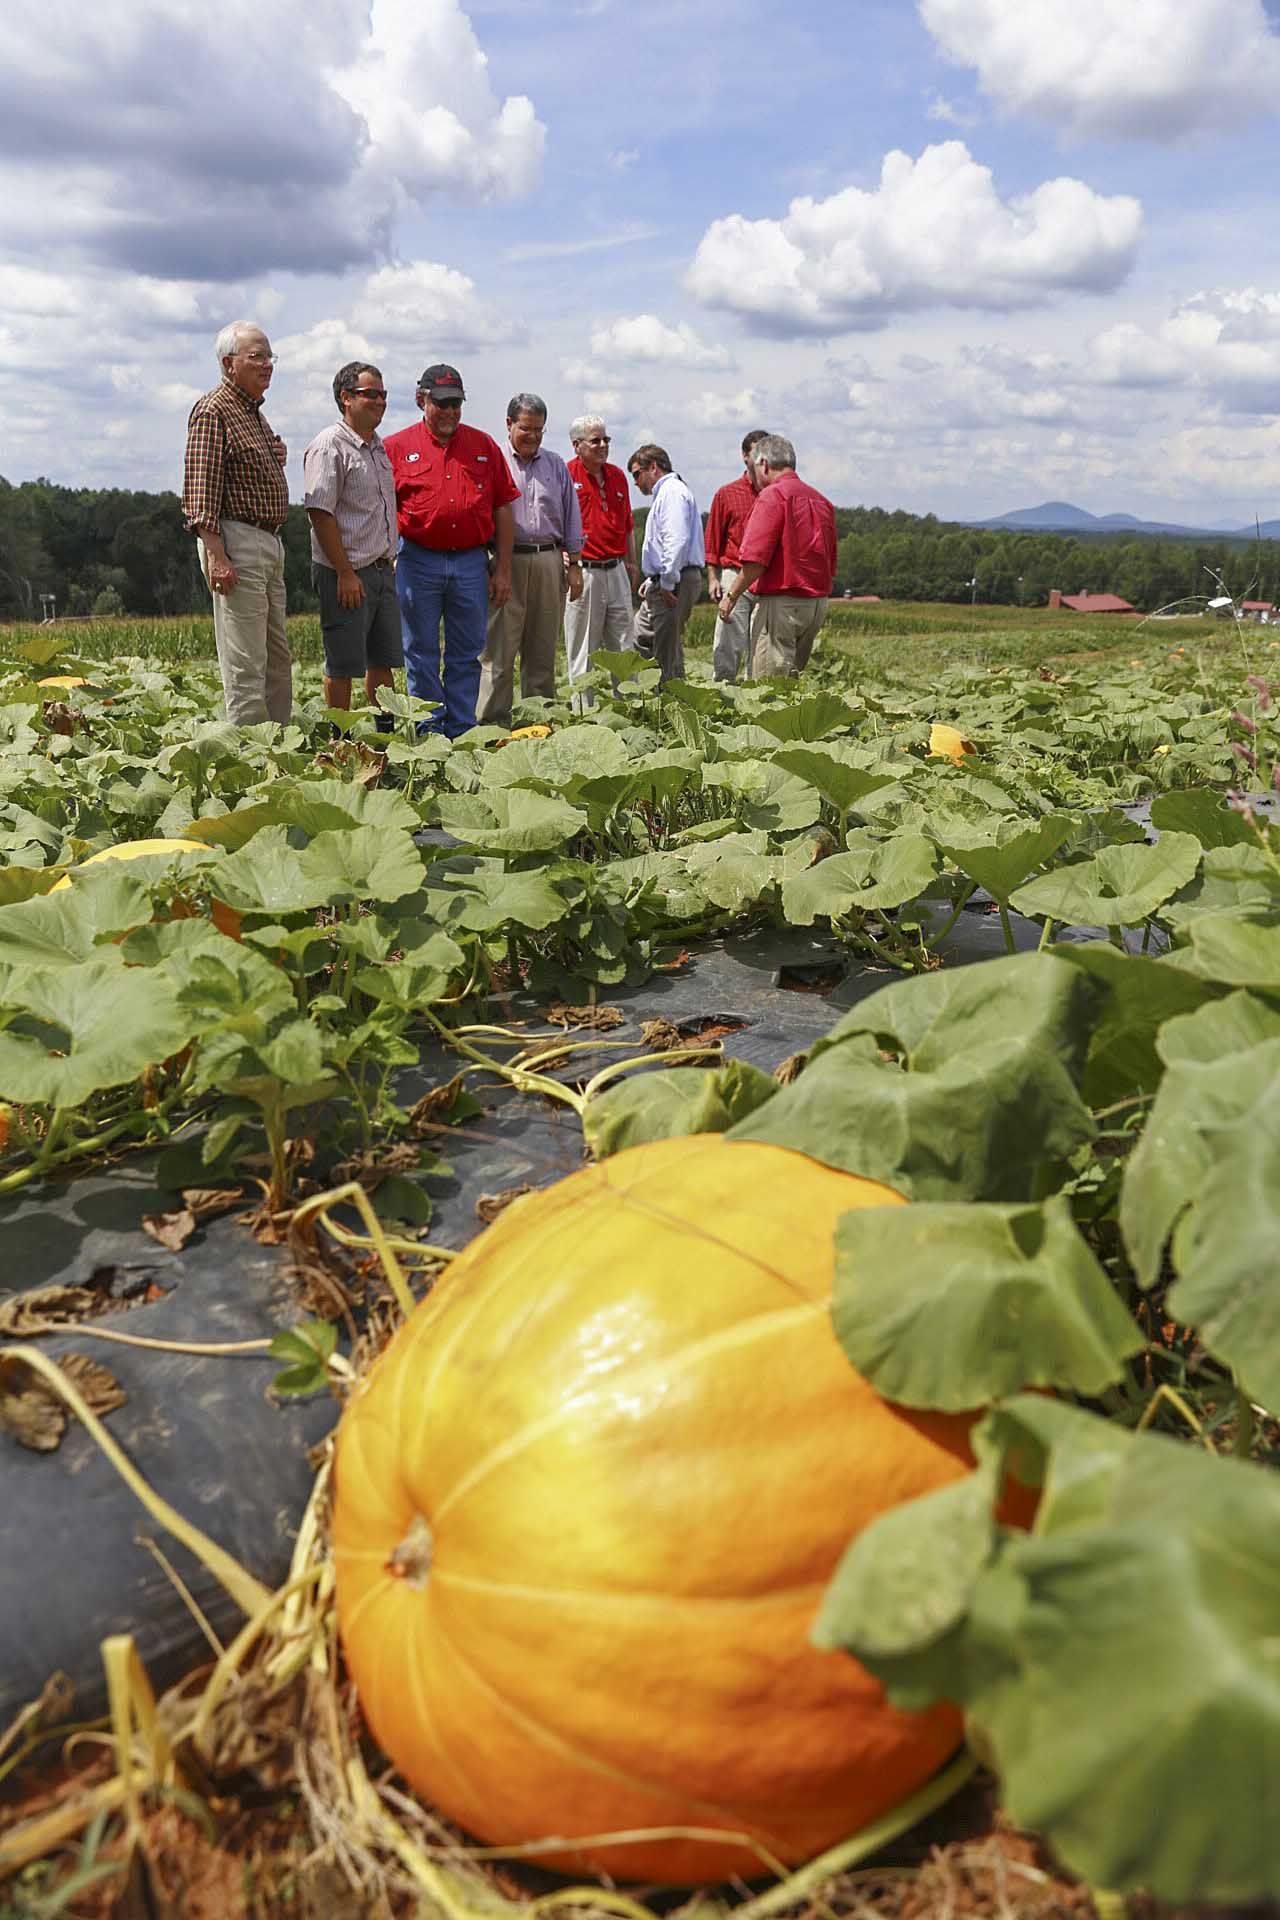 Georgia Commissioner of Agriculture Gary Black examines a pumpkin field at Jaemor Farms with farm manager Drew Echols, Rep. Terry England, UGA President Jere Morehead, CAES Dean J. Scott Angle and other officials during the UGA President's Third Annual Farm Tour.